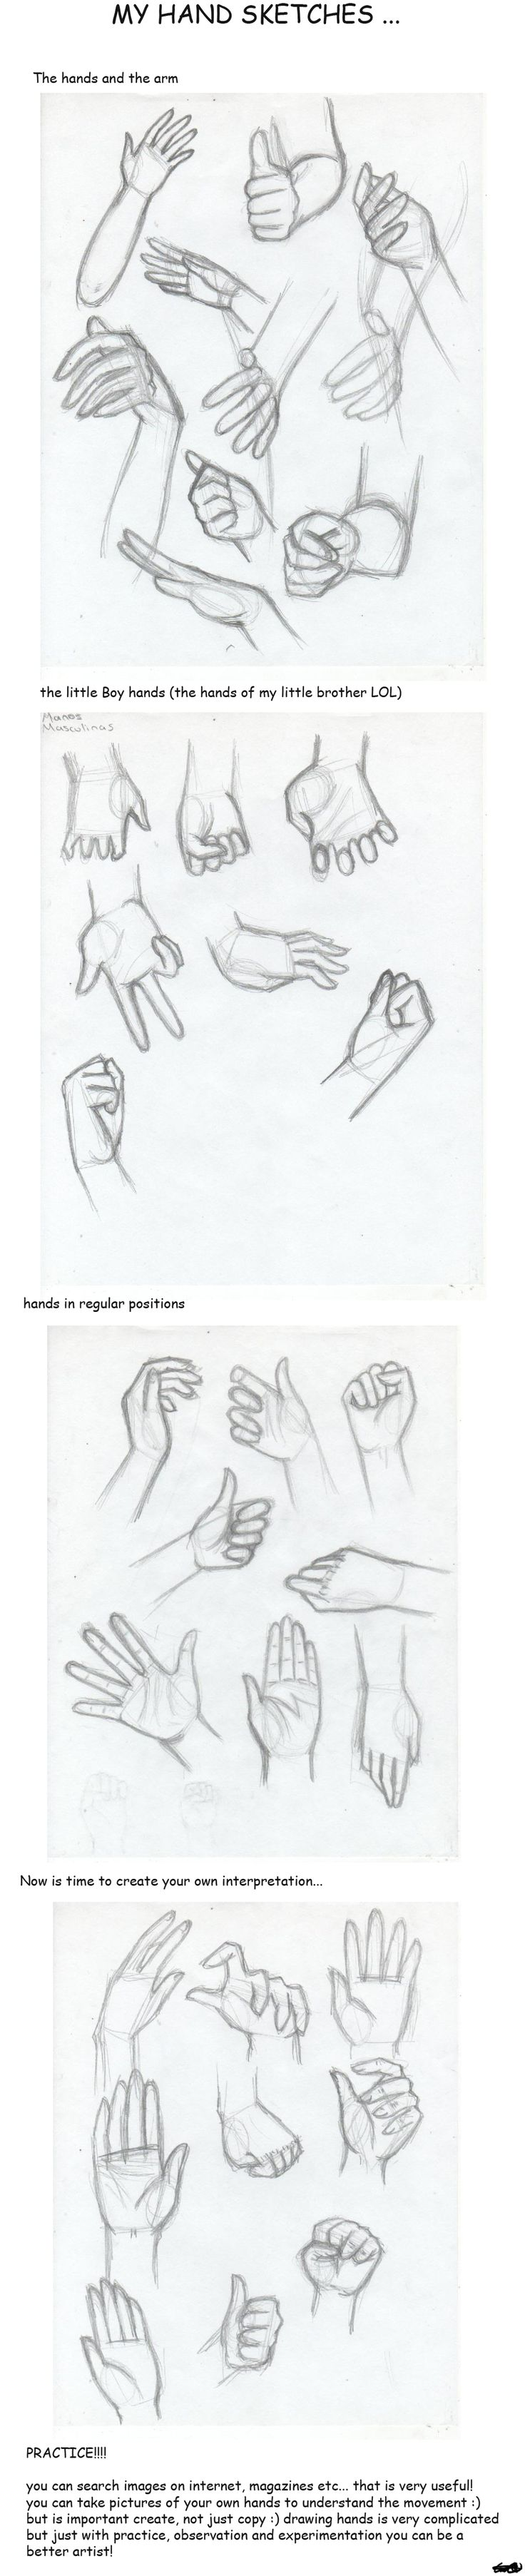 old hand sketches and a little tip by ~Yukyona-sempai on deviantART  https://itunes.apple.com/us/app/draw-pad-pro-amazing-notepads/id483071025?mt=8at=10laCC